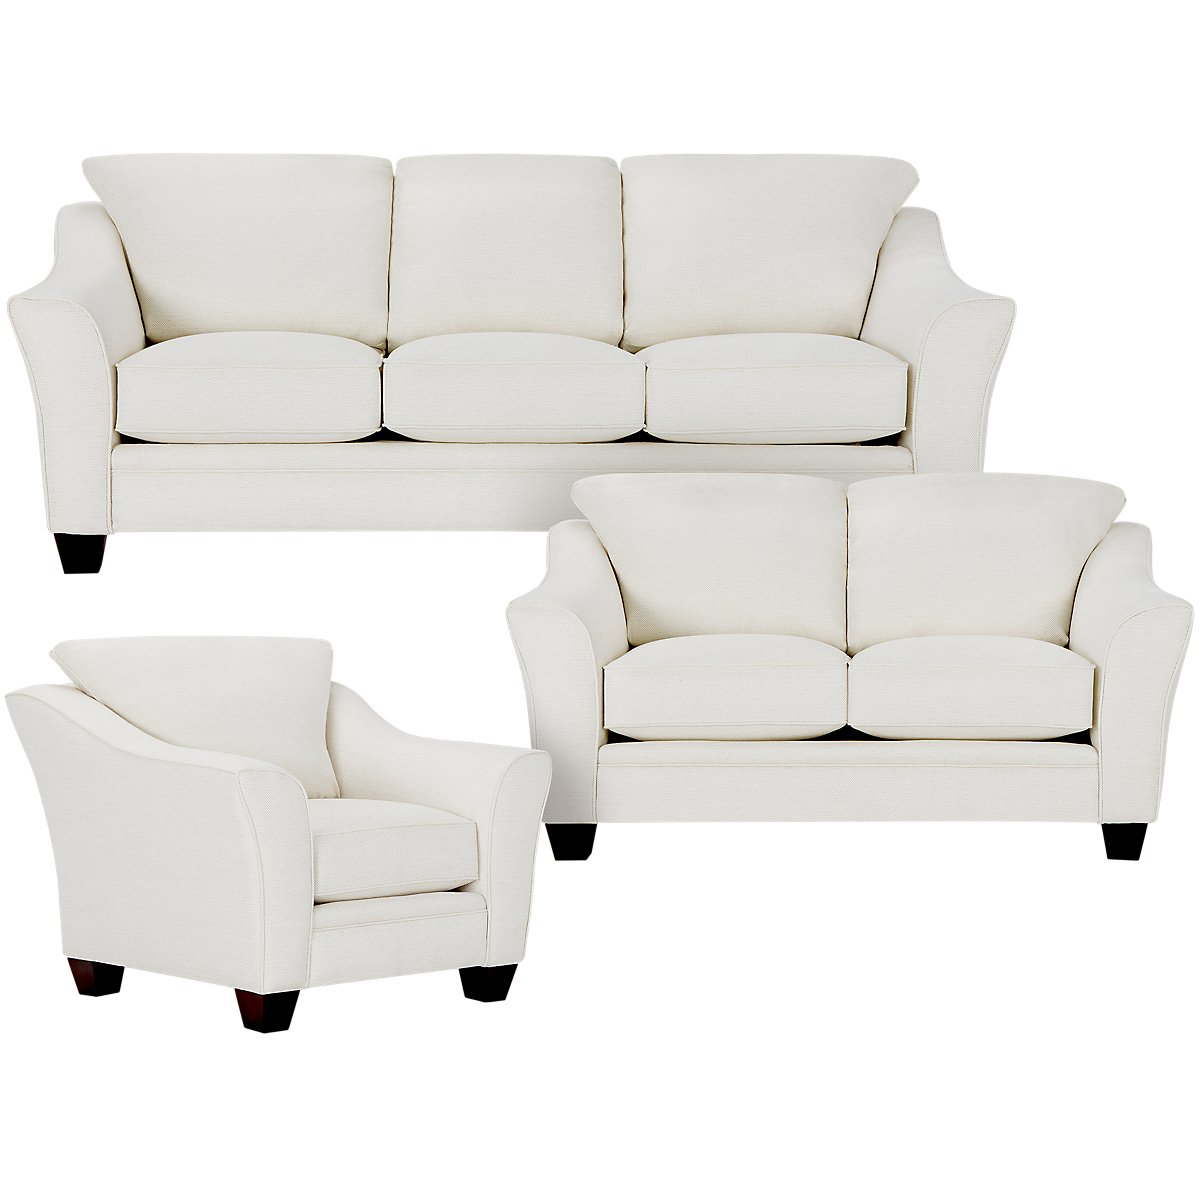 City furniture avery white fabric living room for Fabric living room chairs